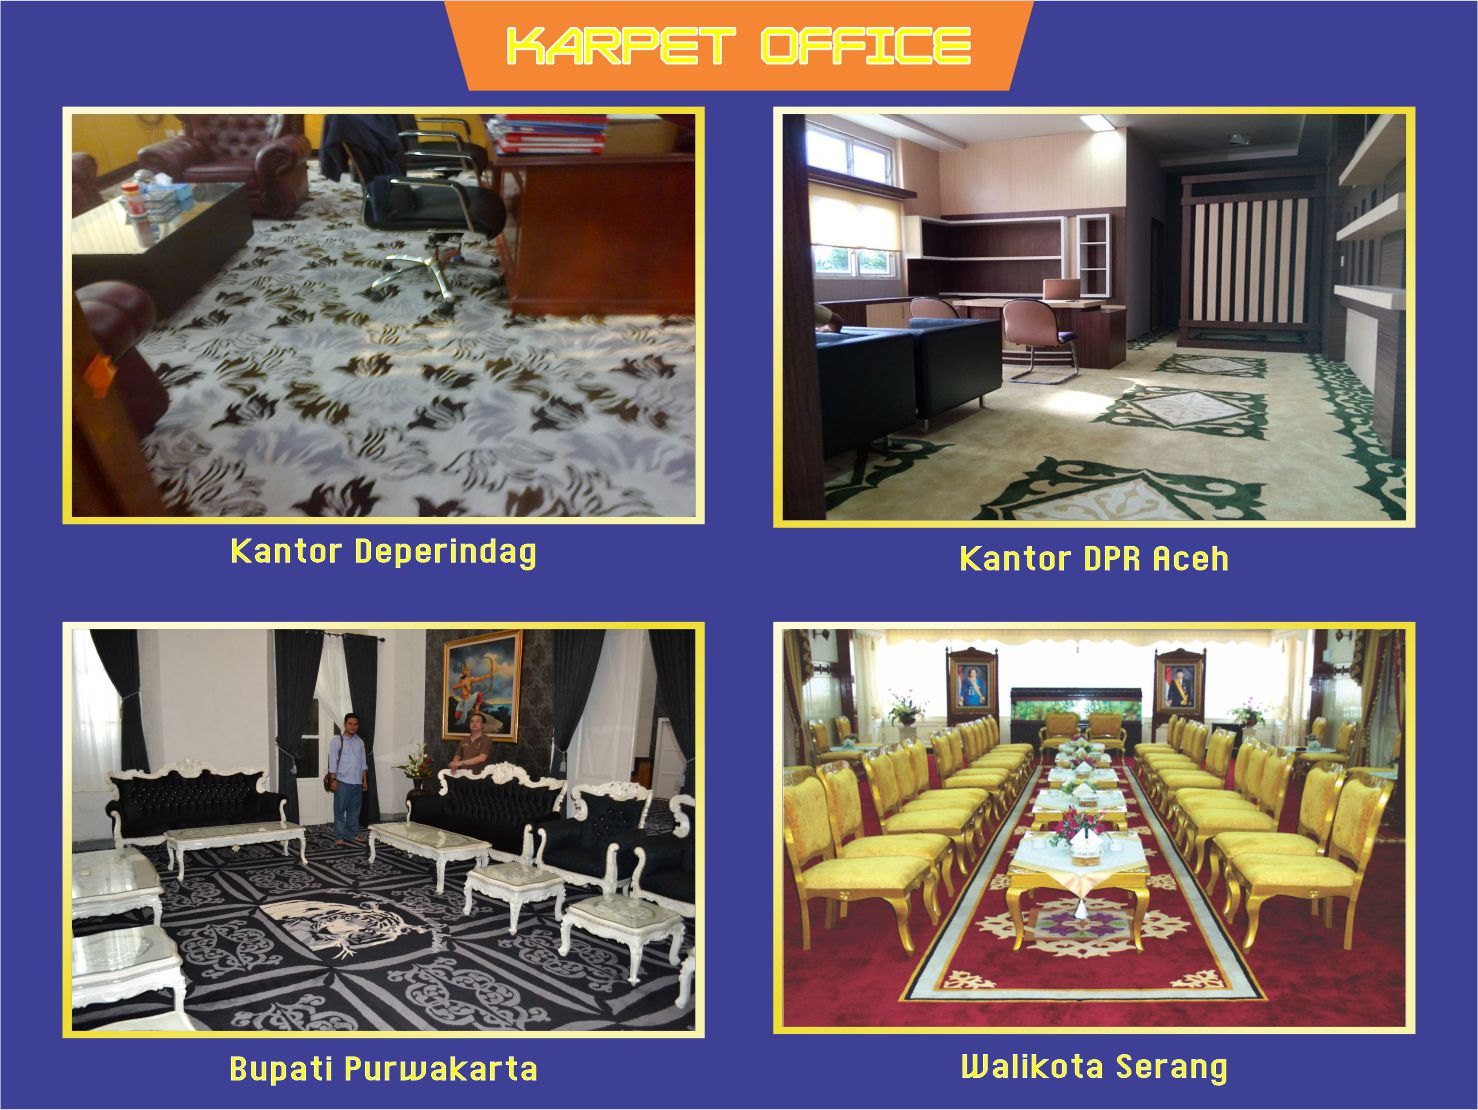 KARPET OFFICE